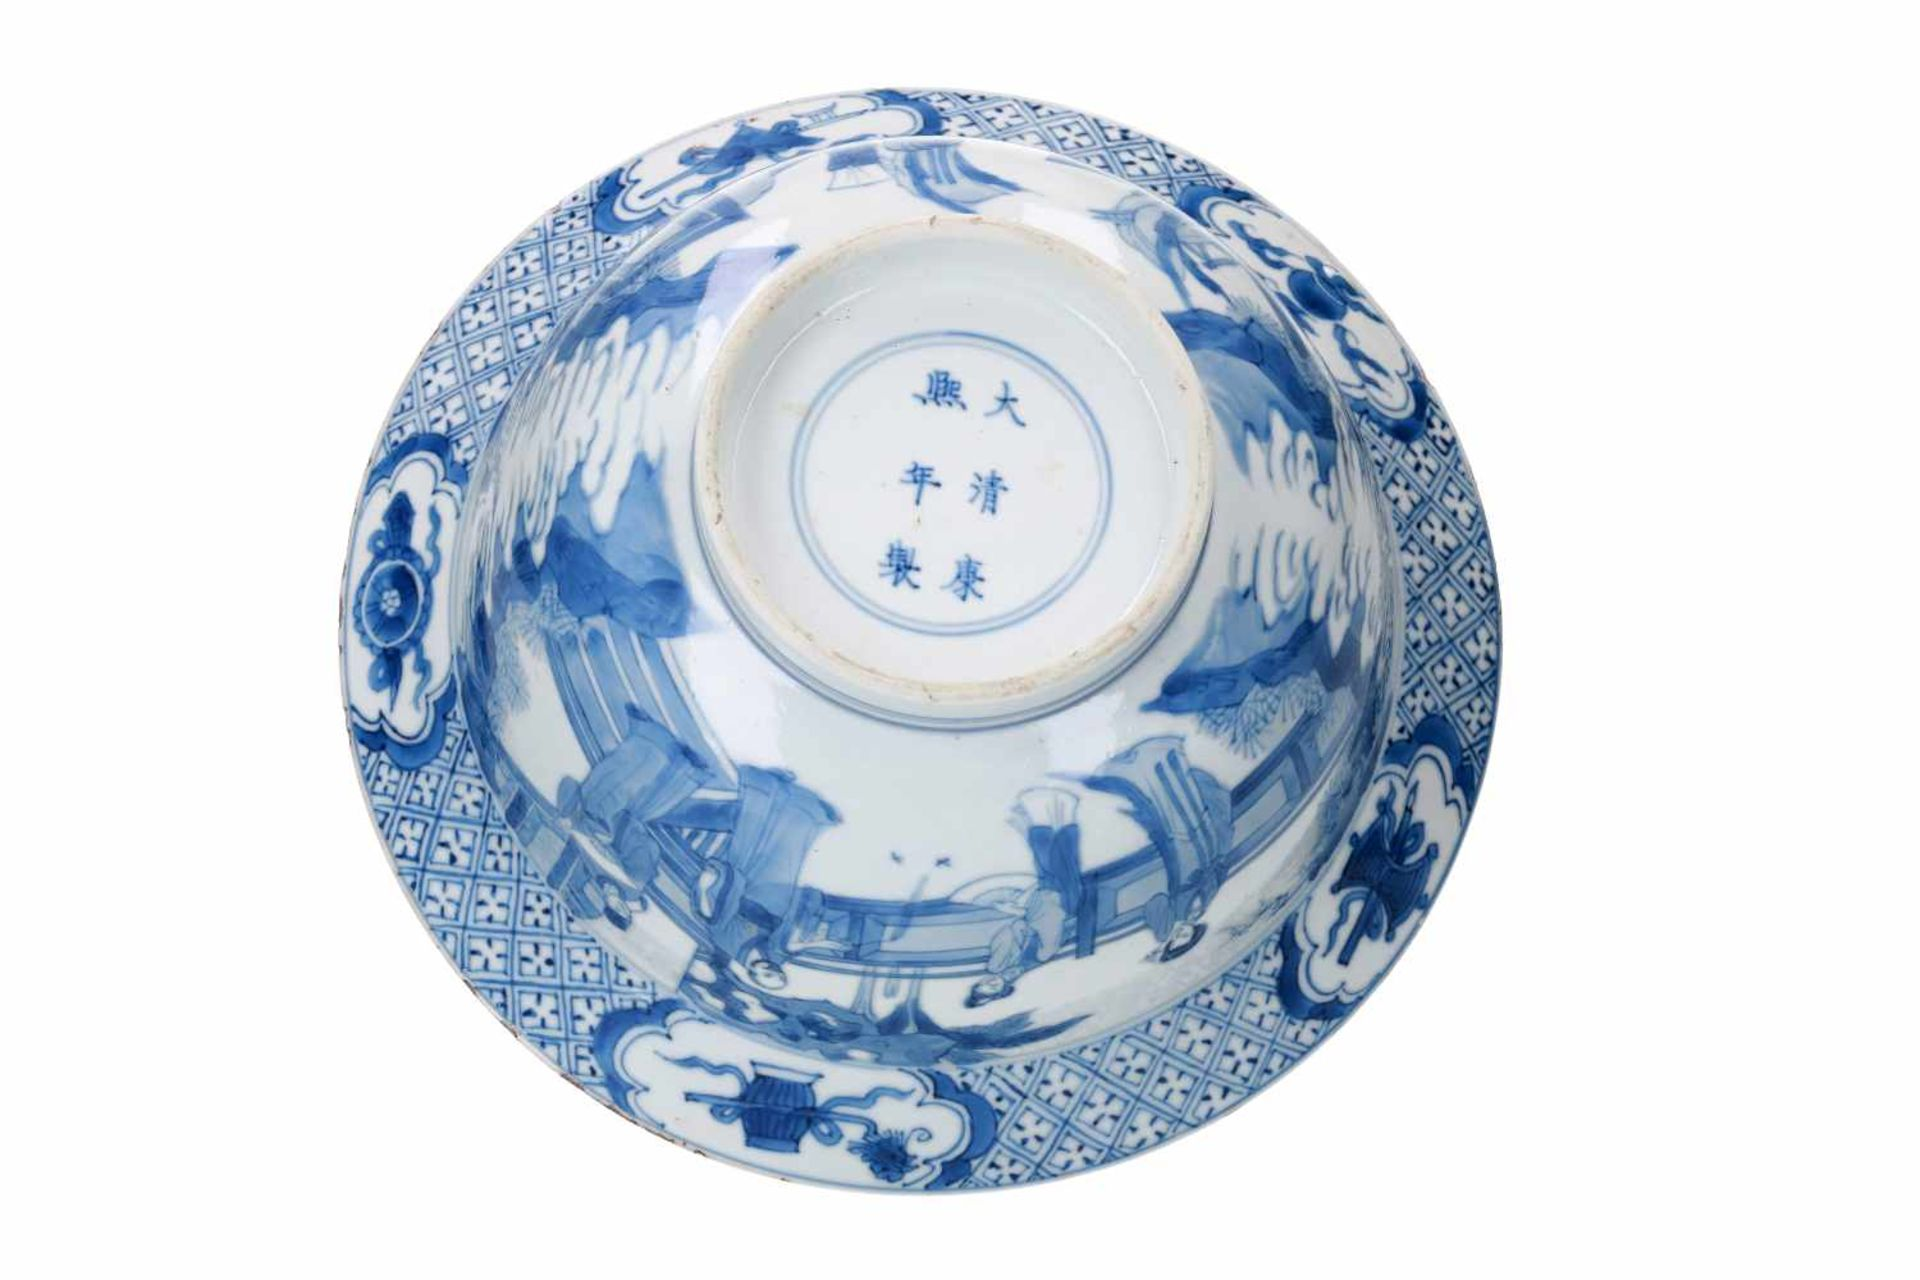 A blue and white porcelain 'klapmuts' bowl, decorated with scenes of the Romance of the Western - Bild 6 aus 6